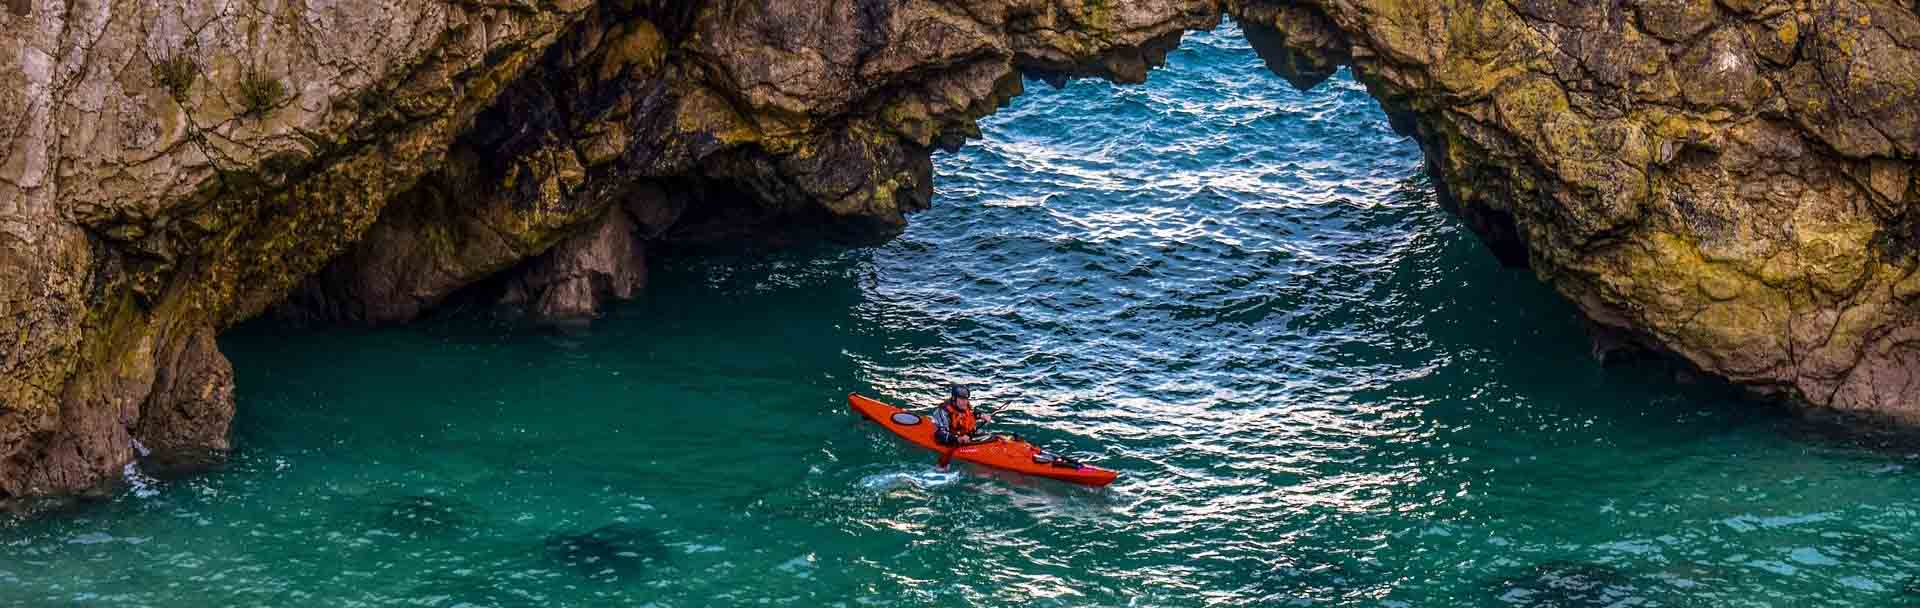 Andaman Sea Kayaking trip